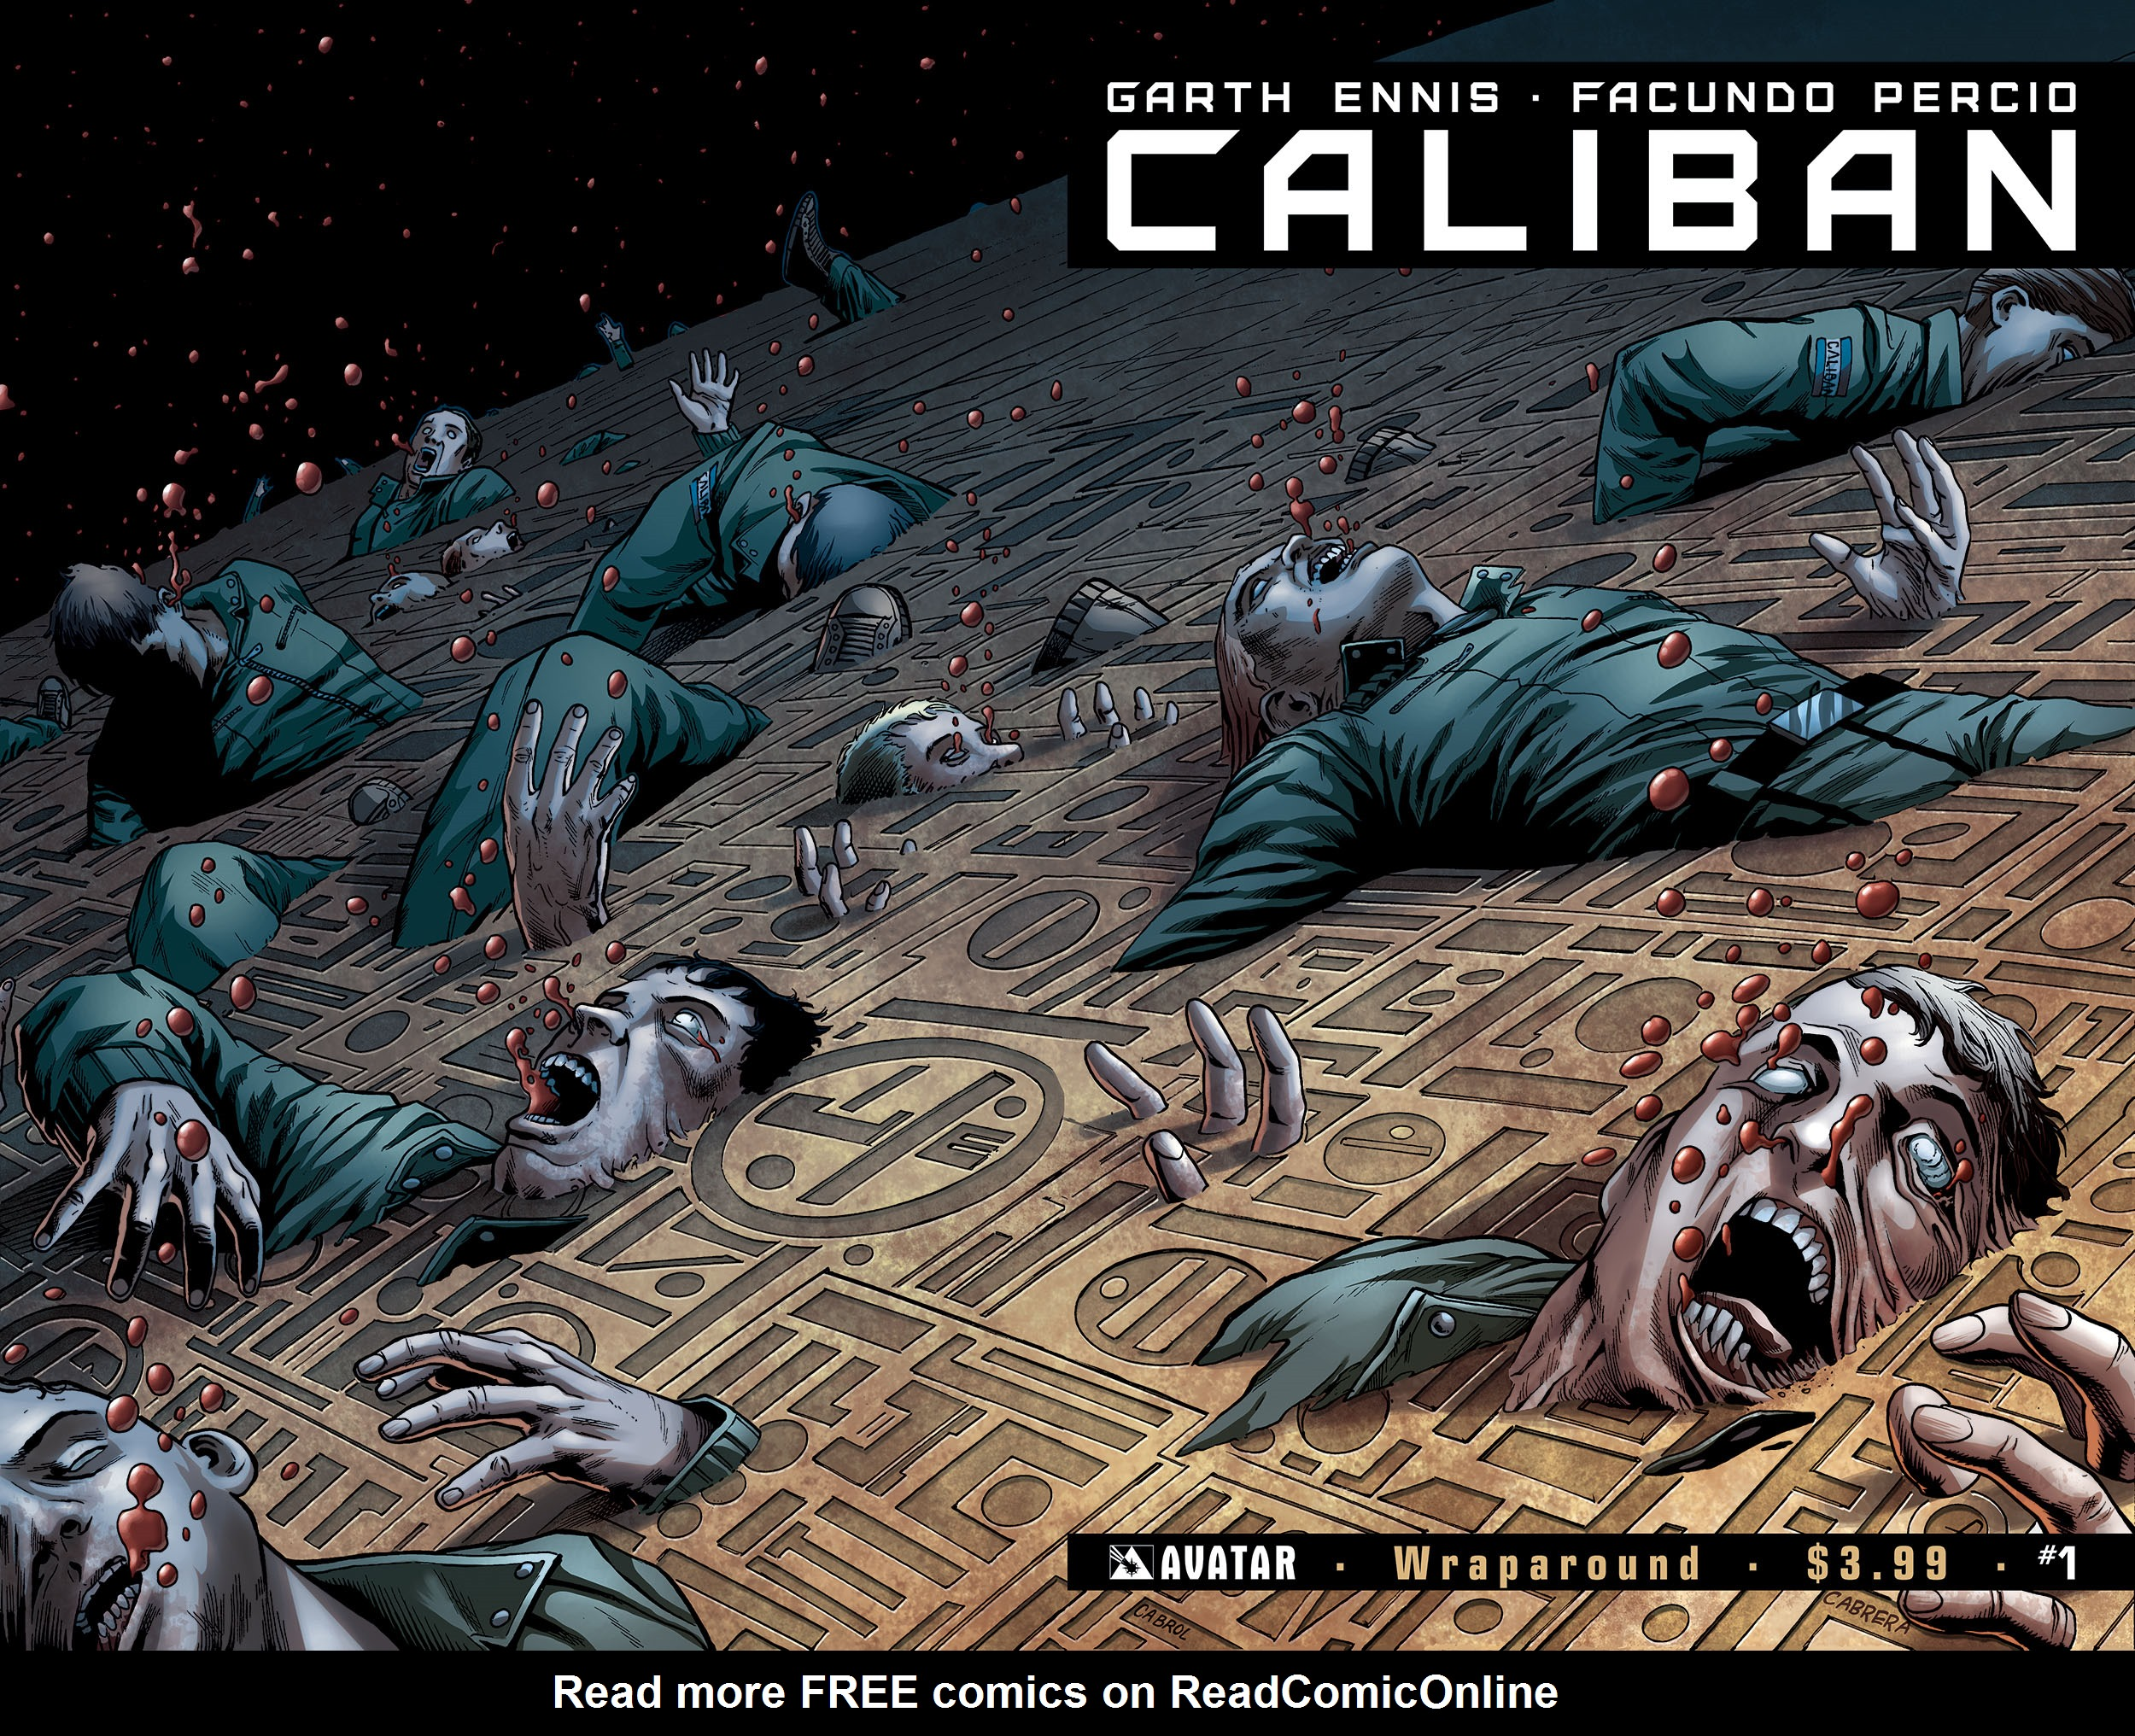 Read online Caliban comic -  Issue #1 - 5